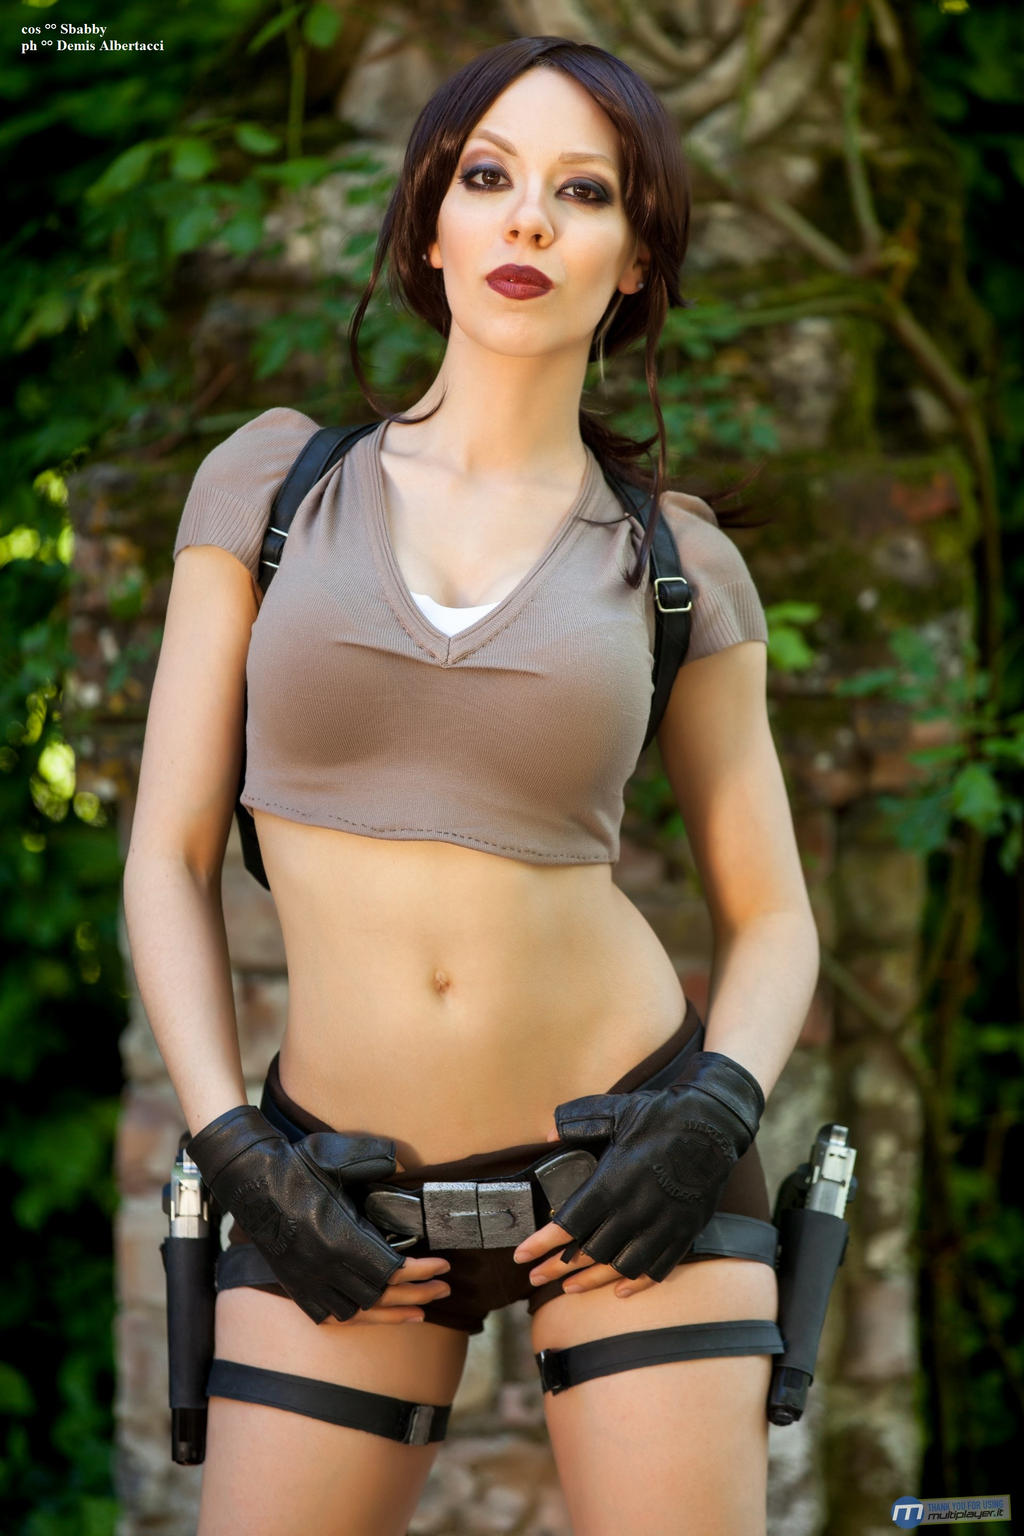 Photo lara croft pornographie porn scenes